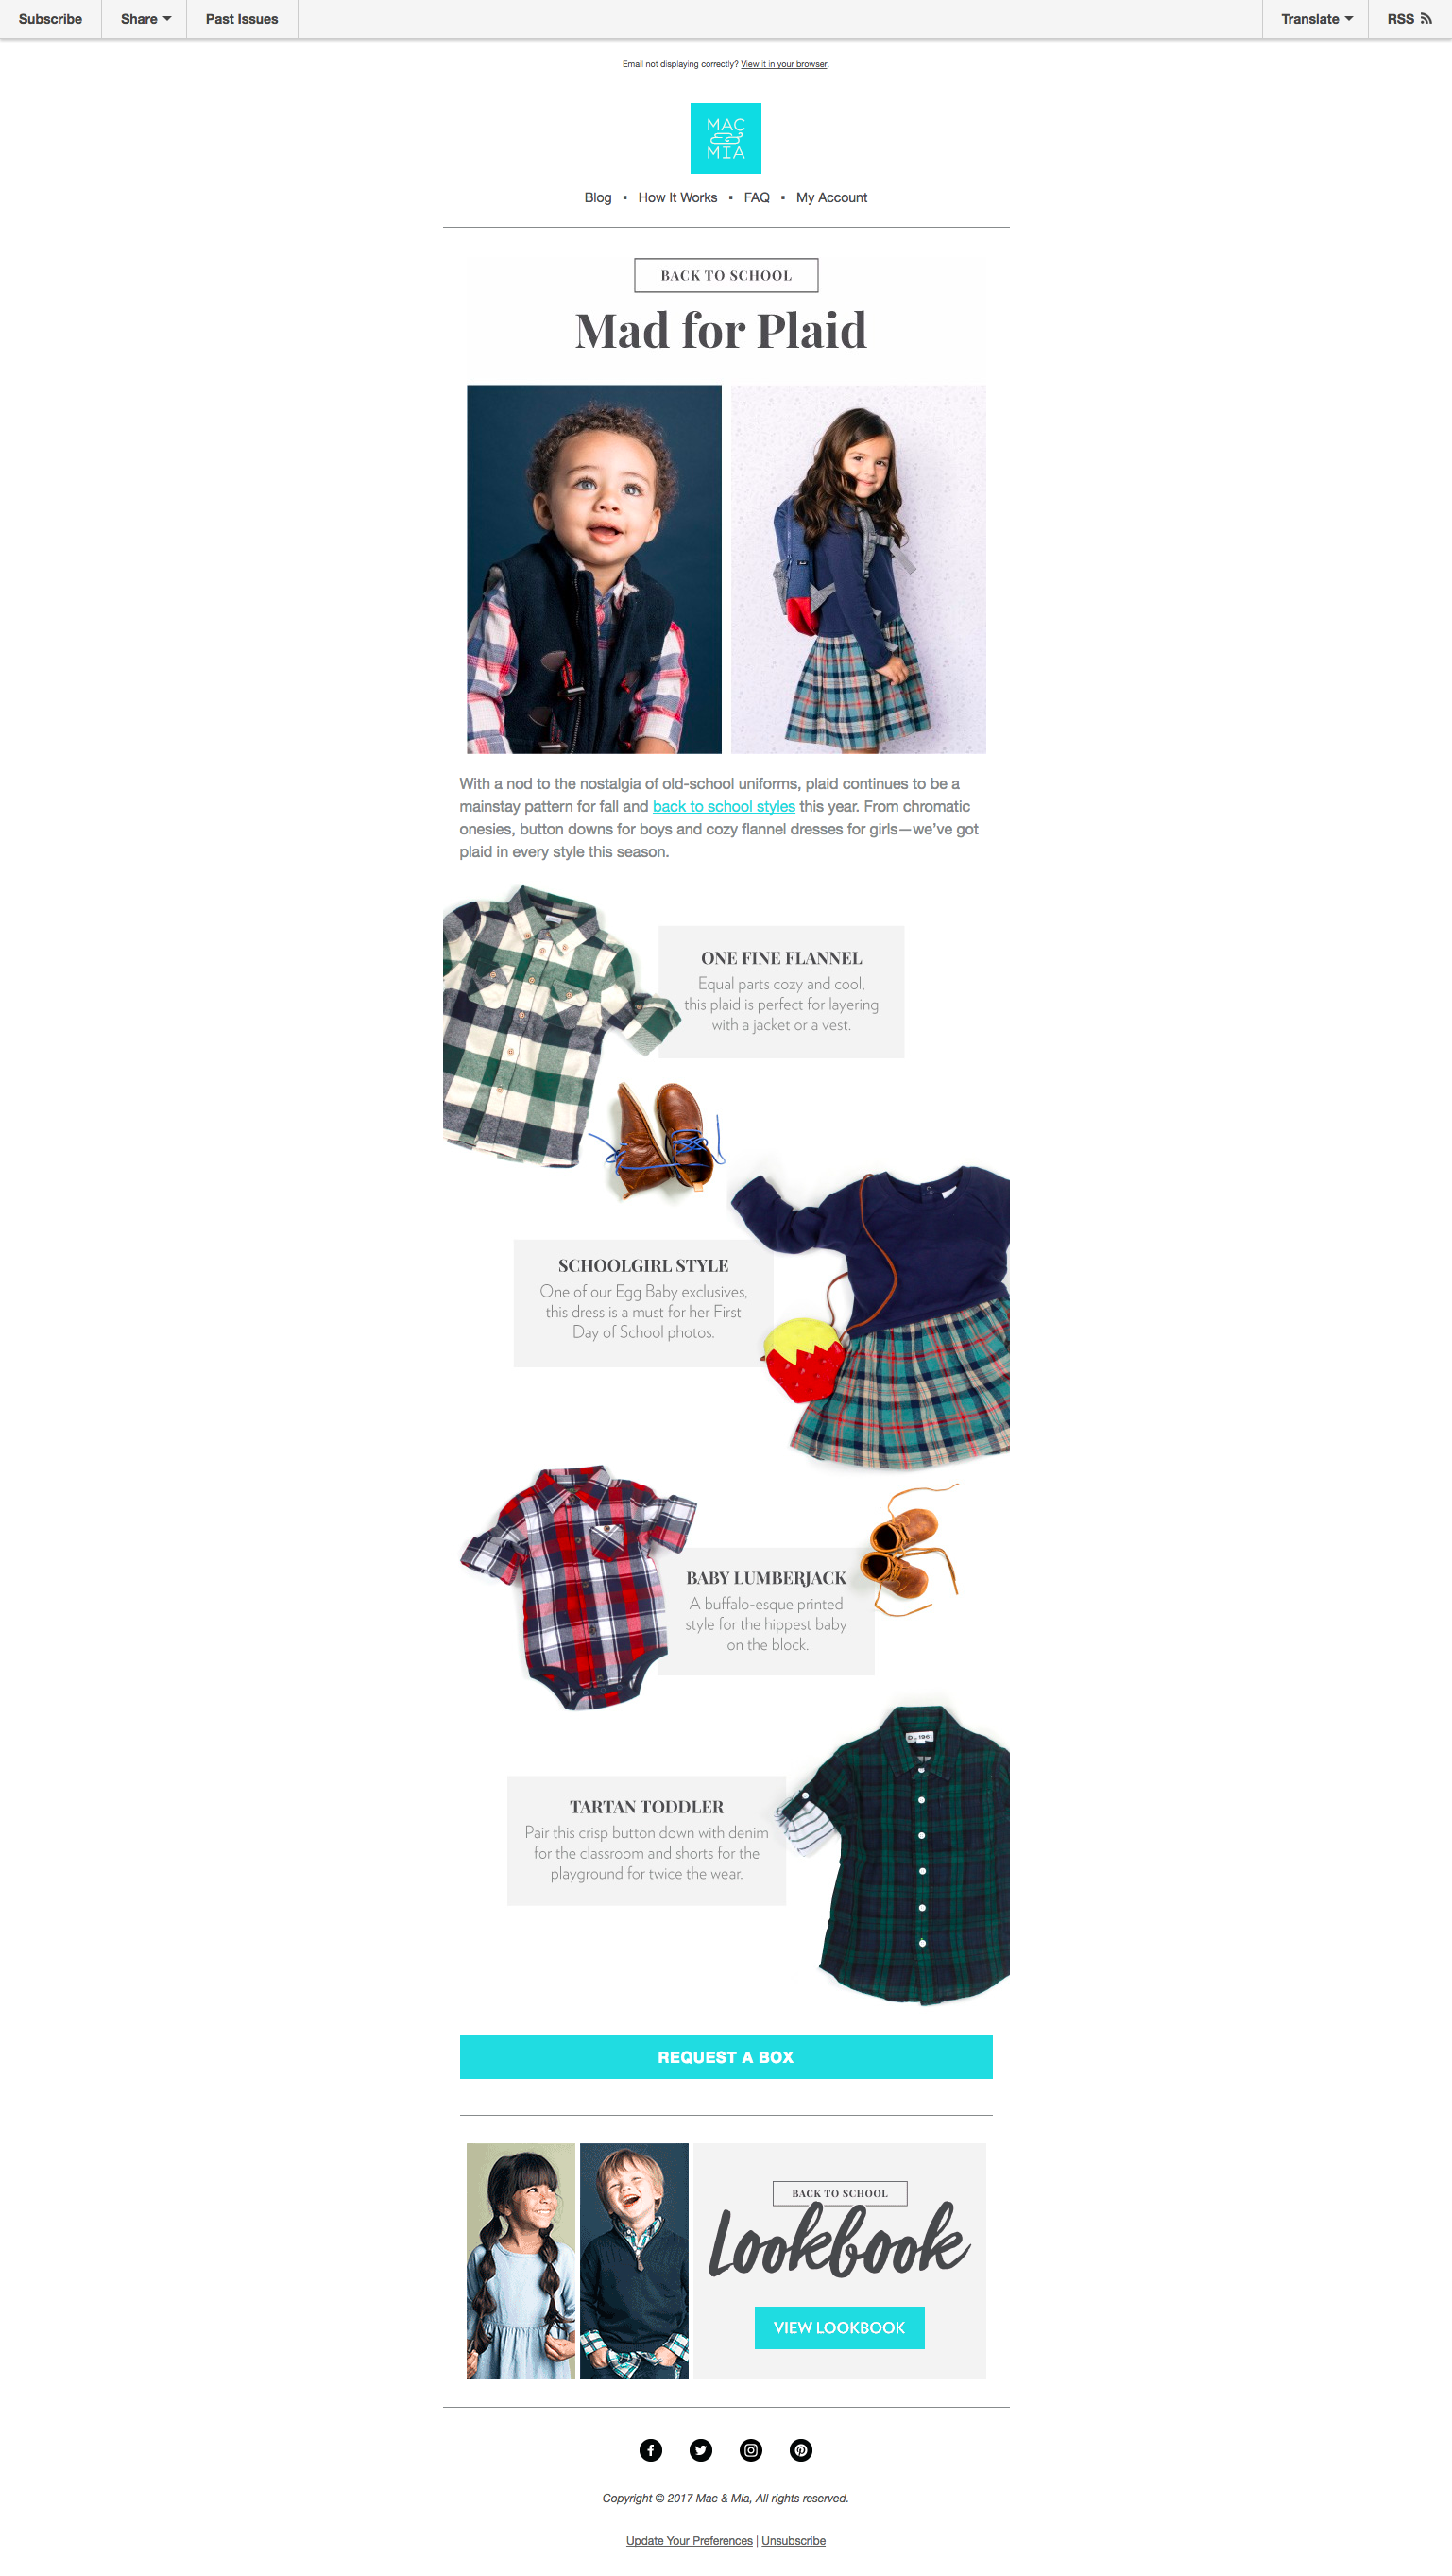 Back to School: Mad for Plaid